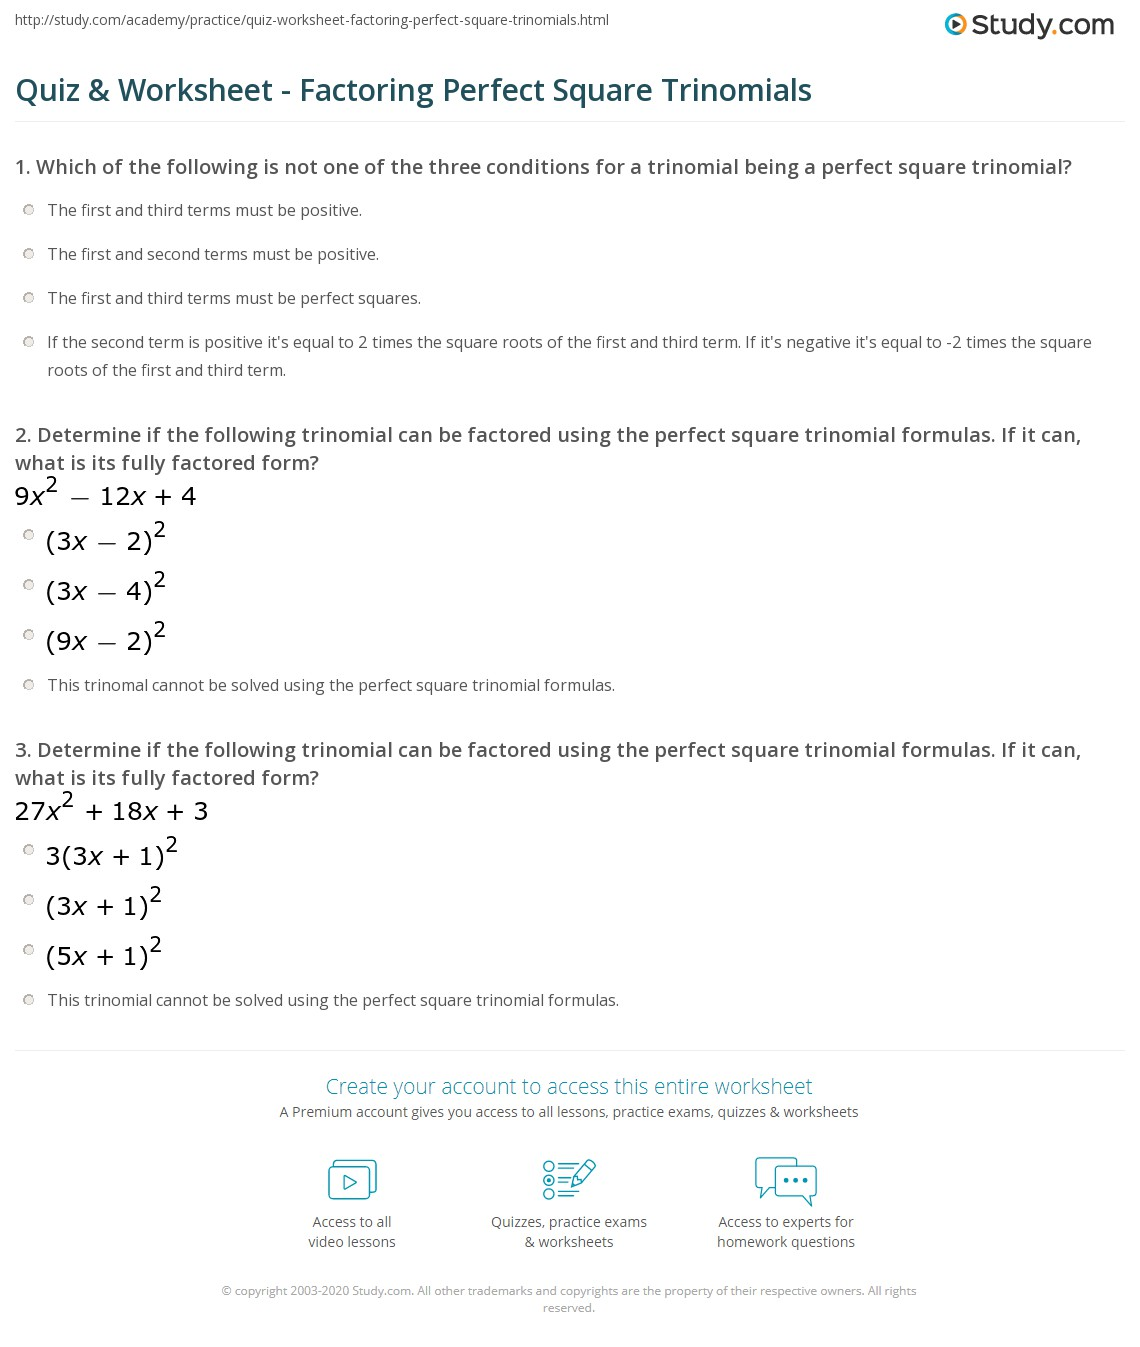 quiz worksheet factoring perfect square trinomials. Black Bedroom Furniture Sets. Home Design Ideas